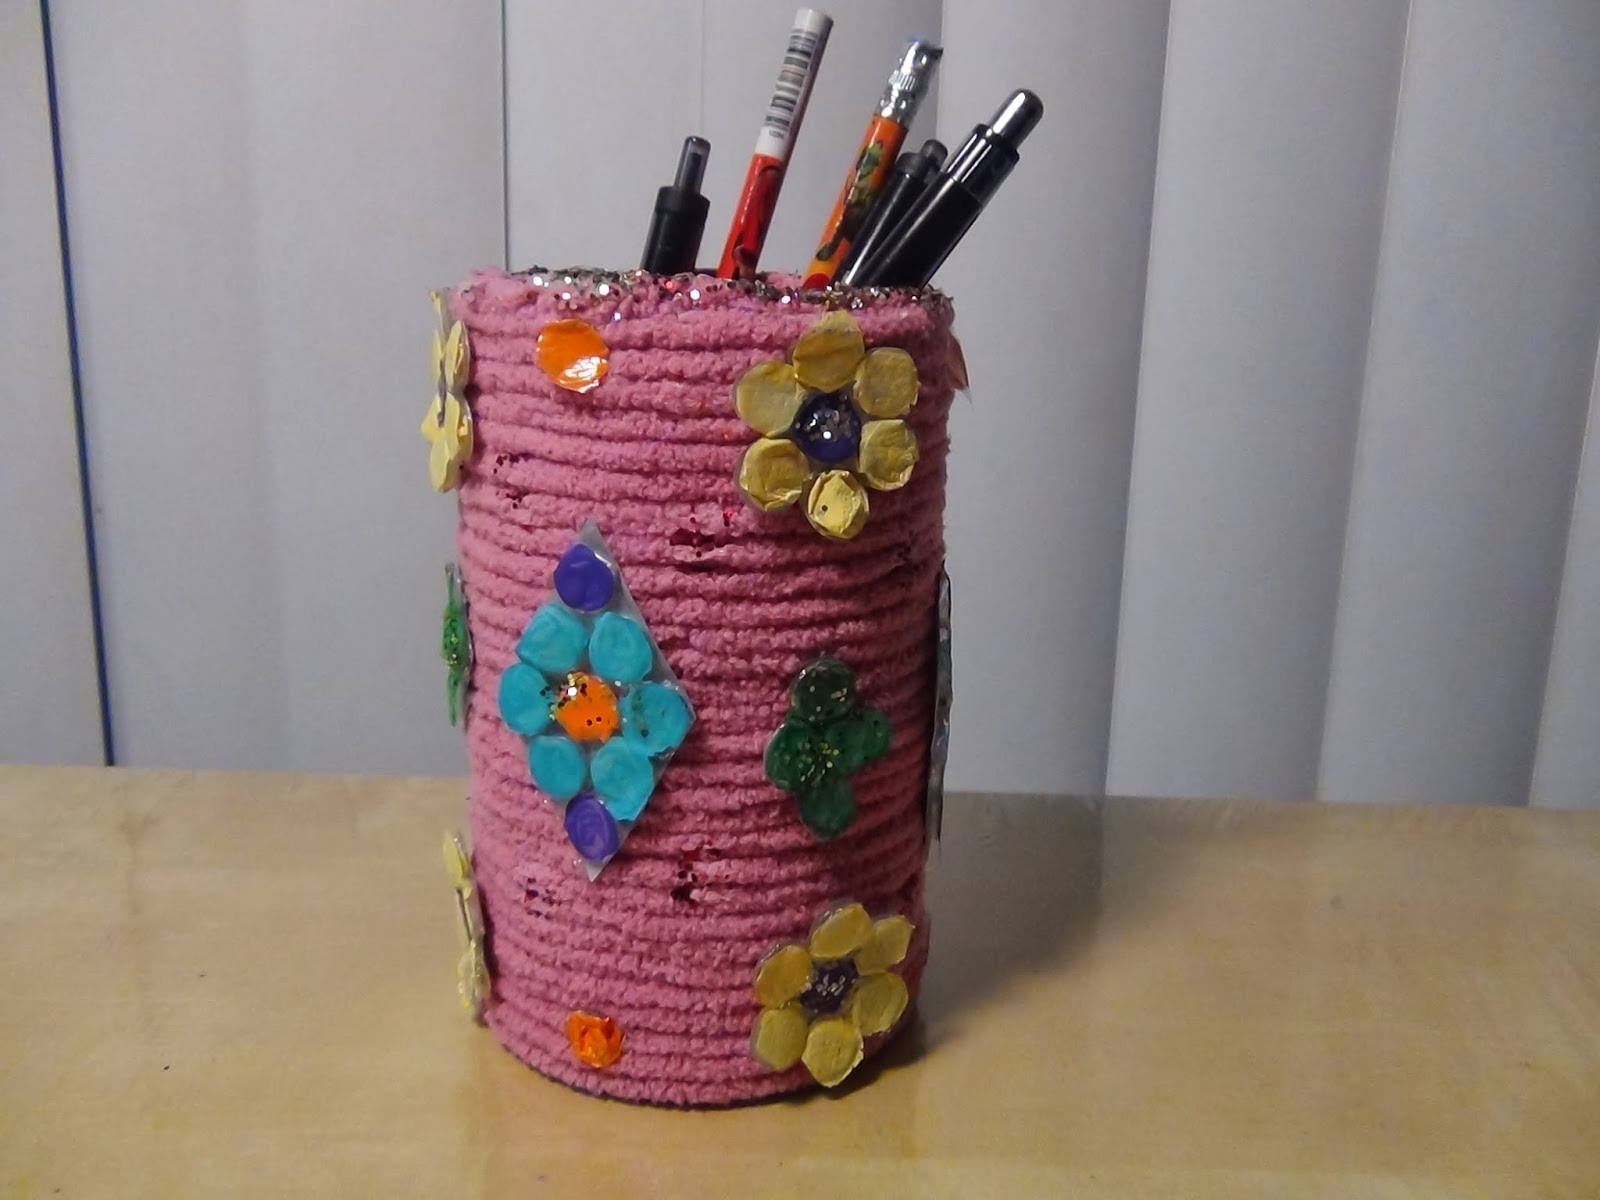 Creative diy crafts diy pen stand for Homemade items from waste materials